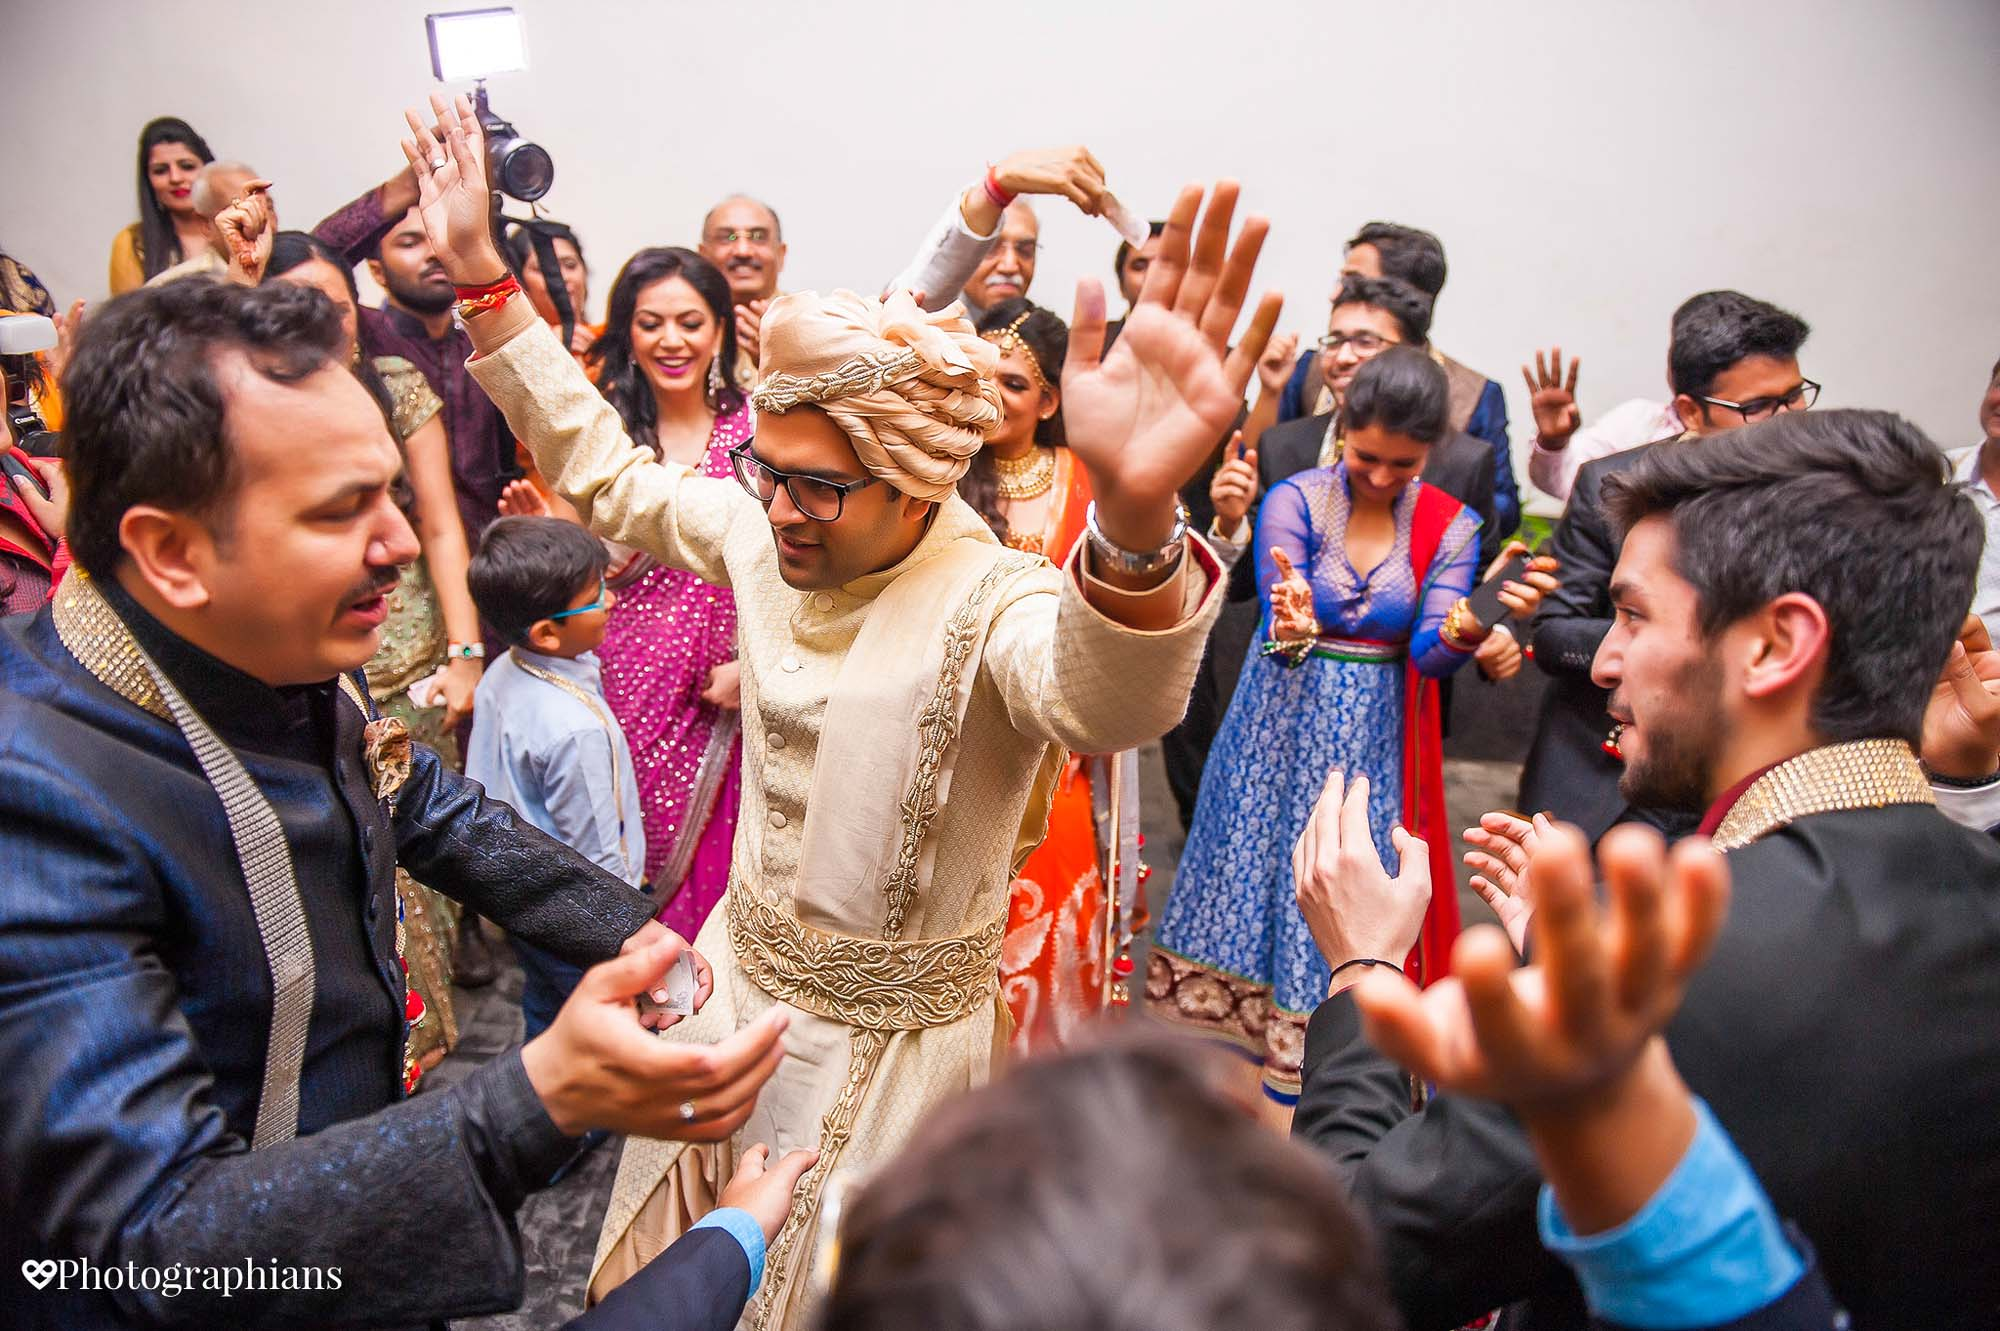 Punjabi_Marwari_Wedding_Kolkata_Photographians_-VIDHI-178